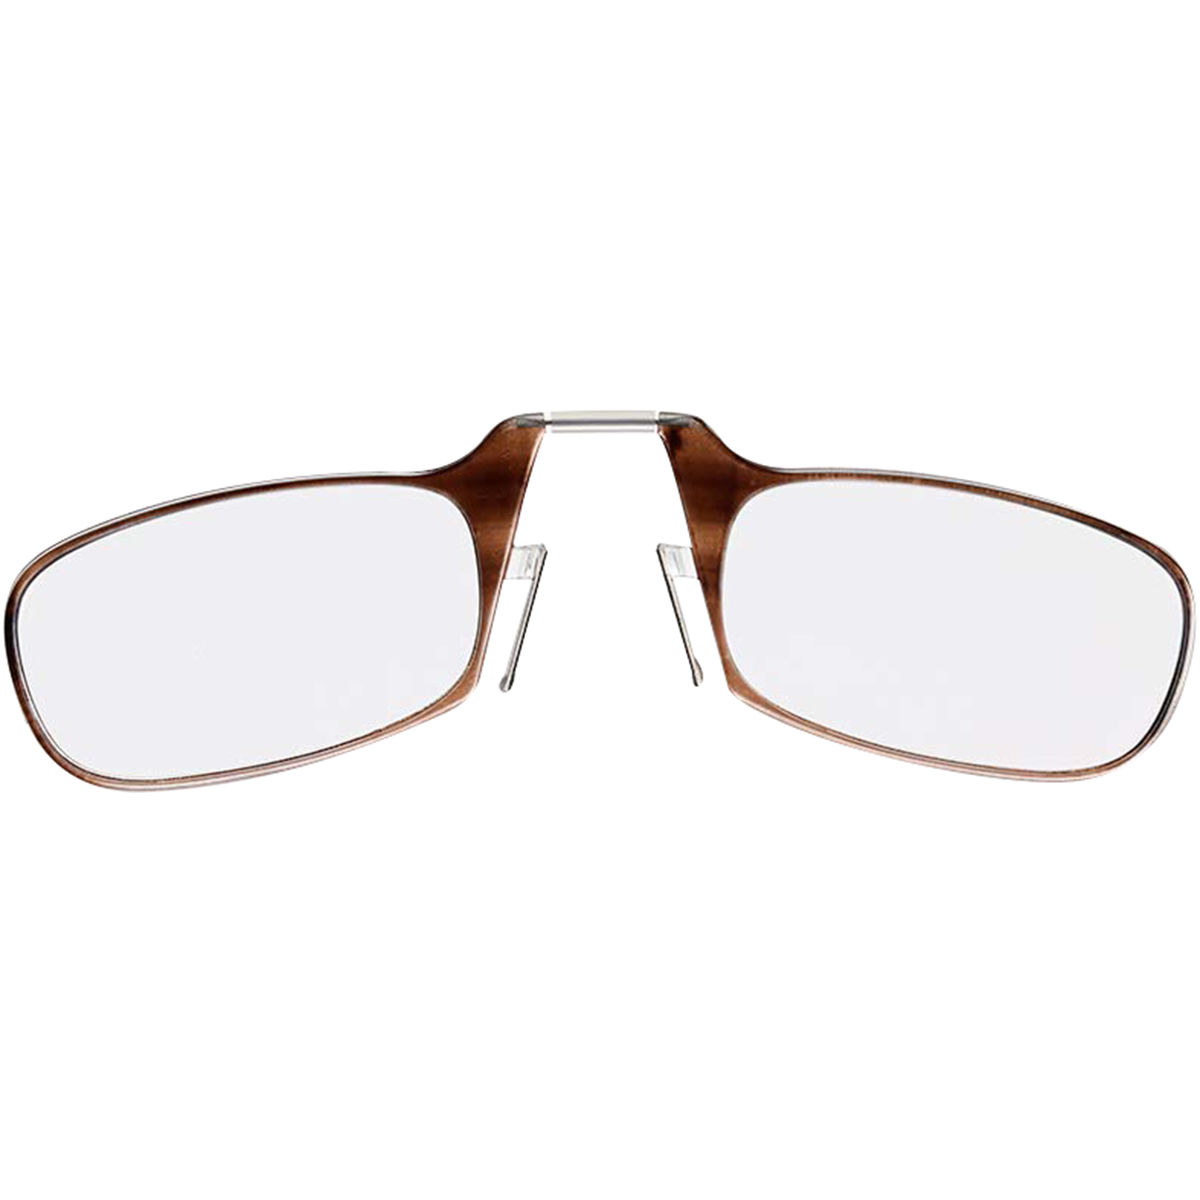 3fa5976fa2c ThinOptics Secure Fit Armless Ultralight Reading Glasses with ...